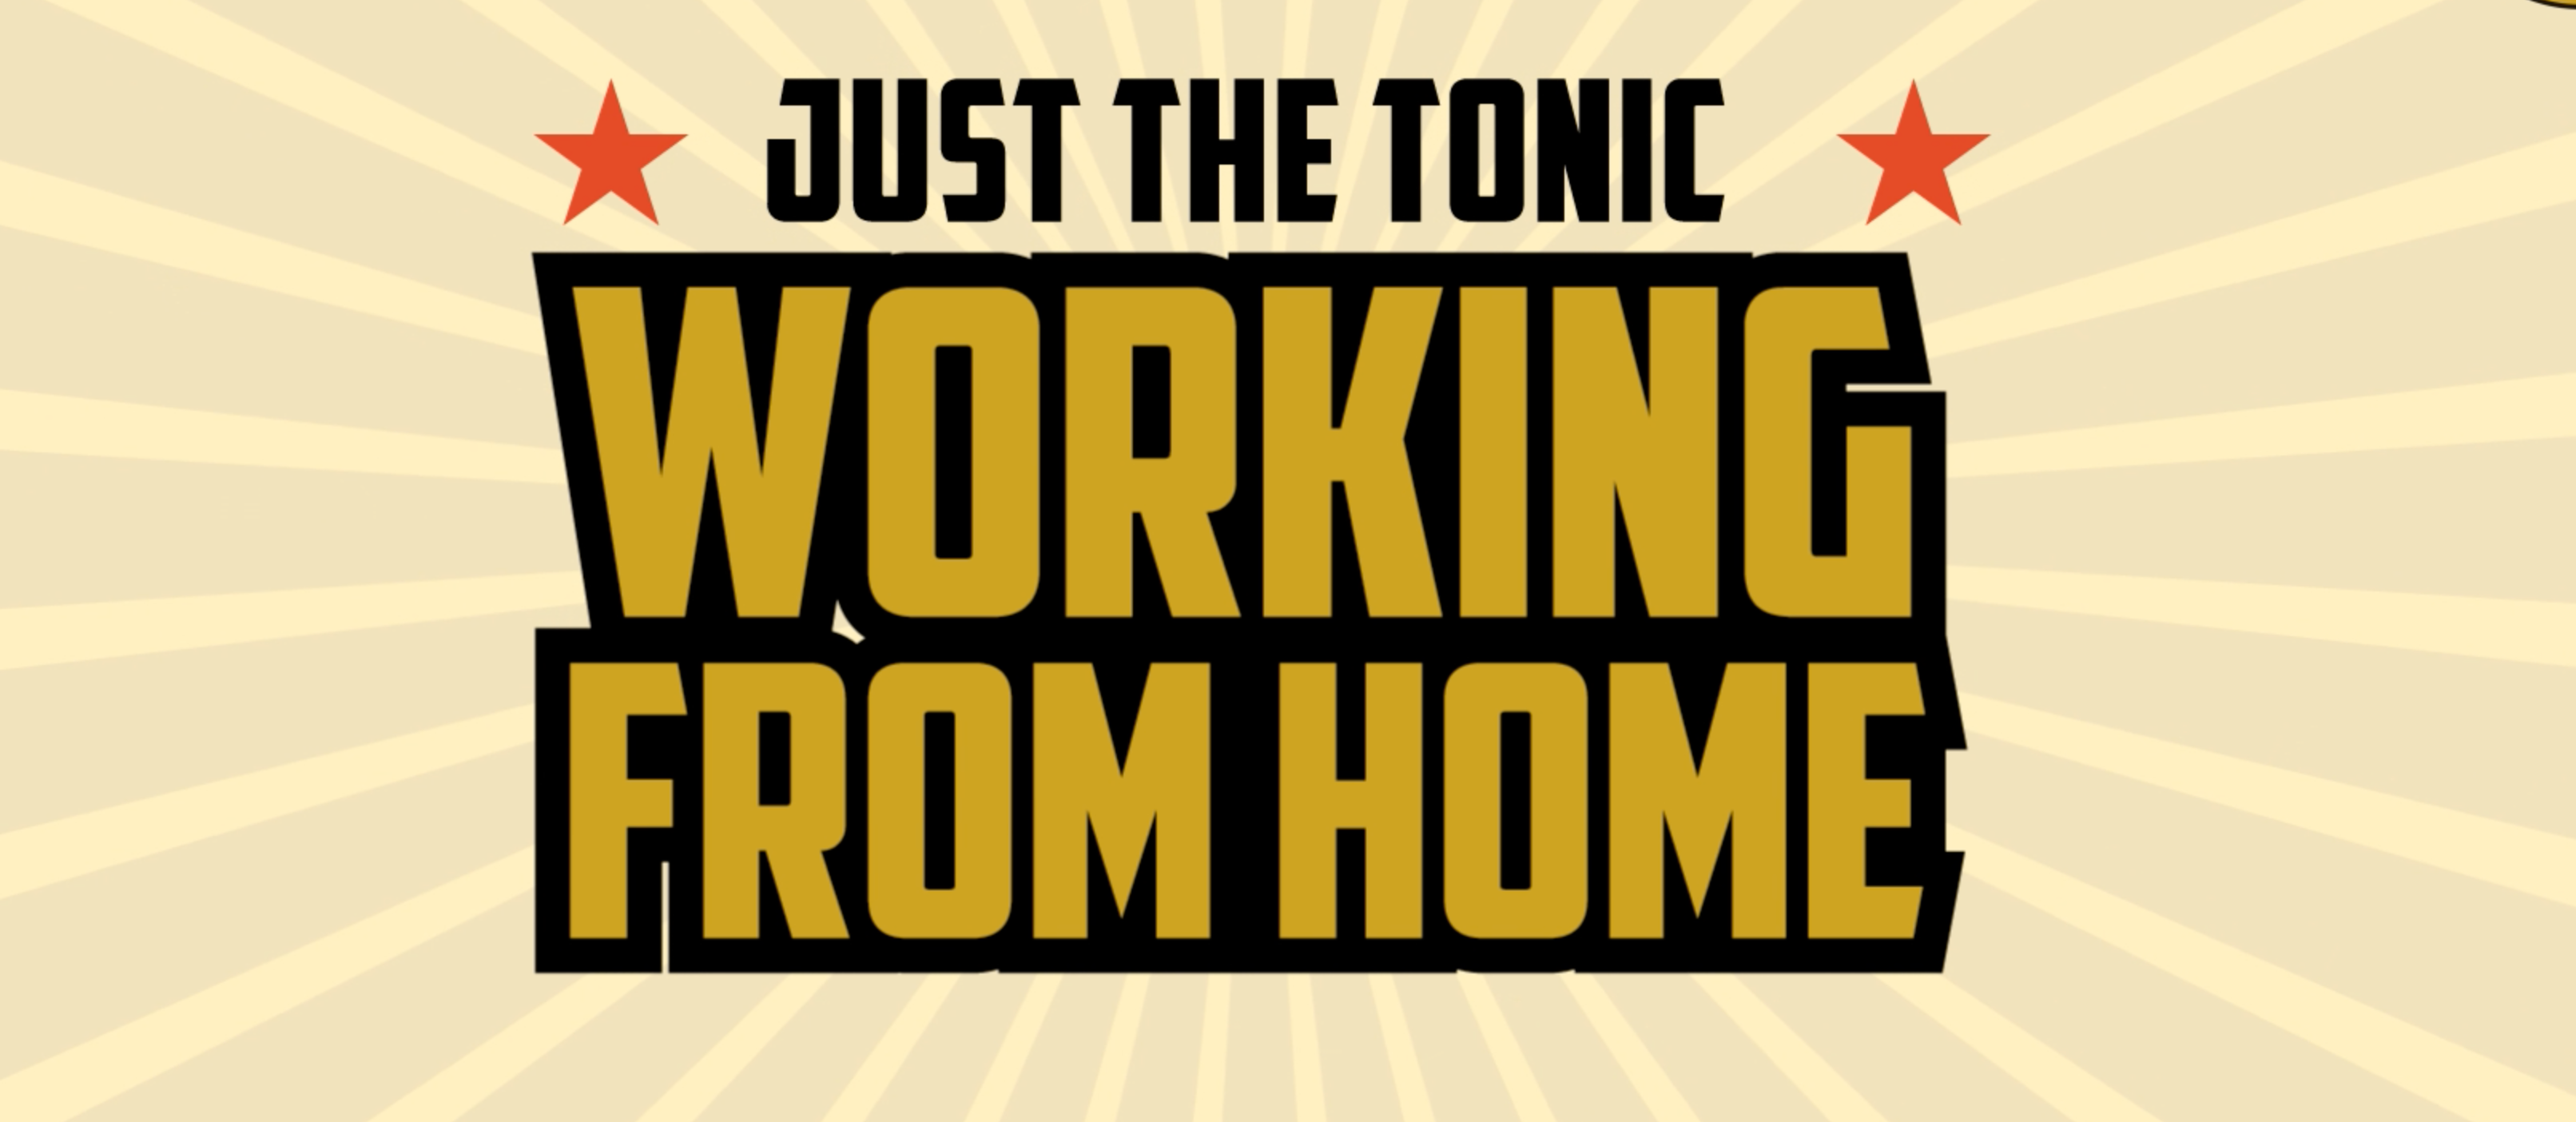 Just the Tonic - Working From Home - Episode 9